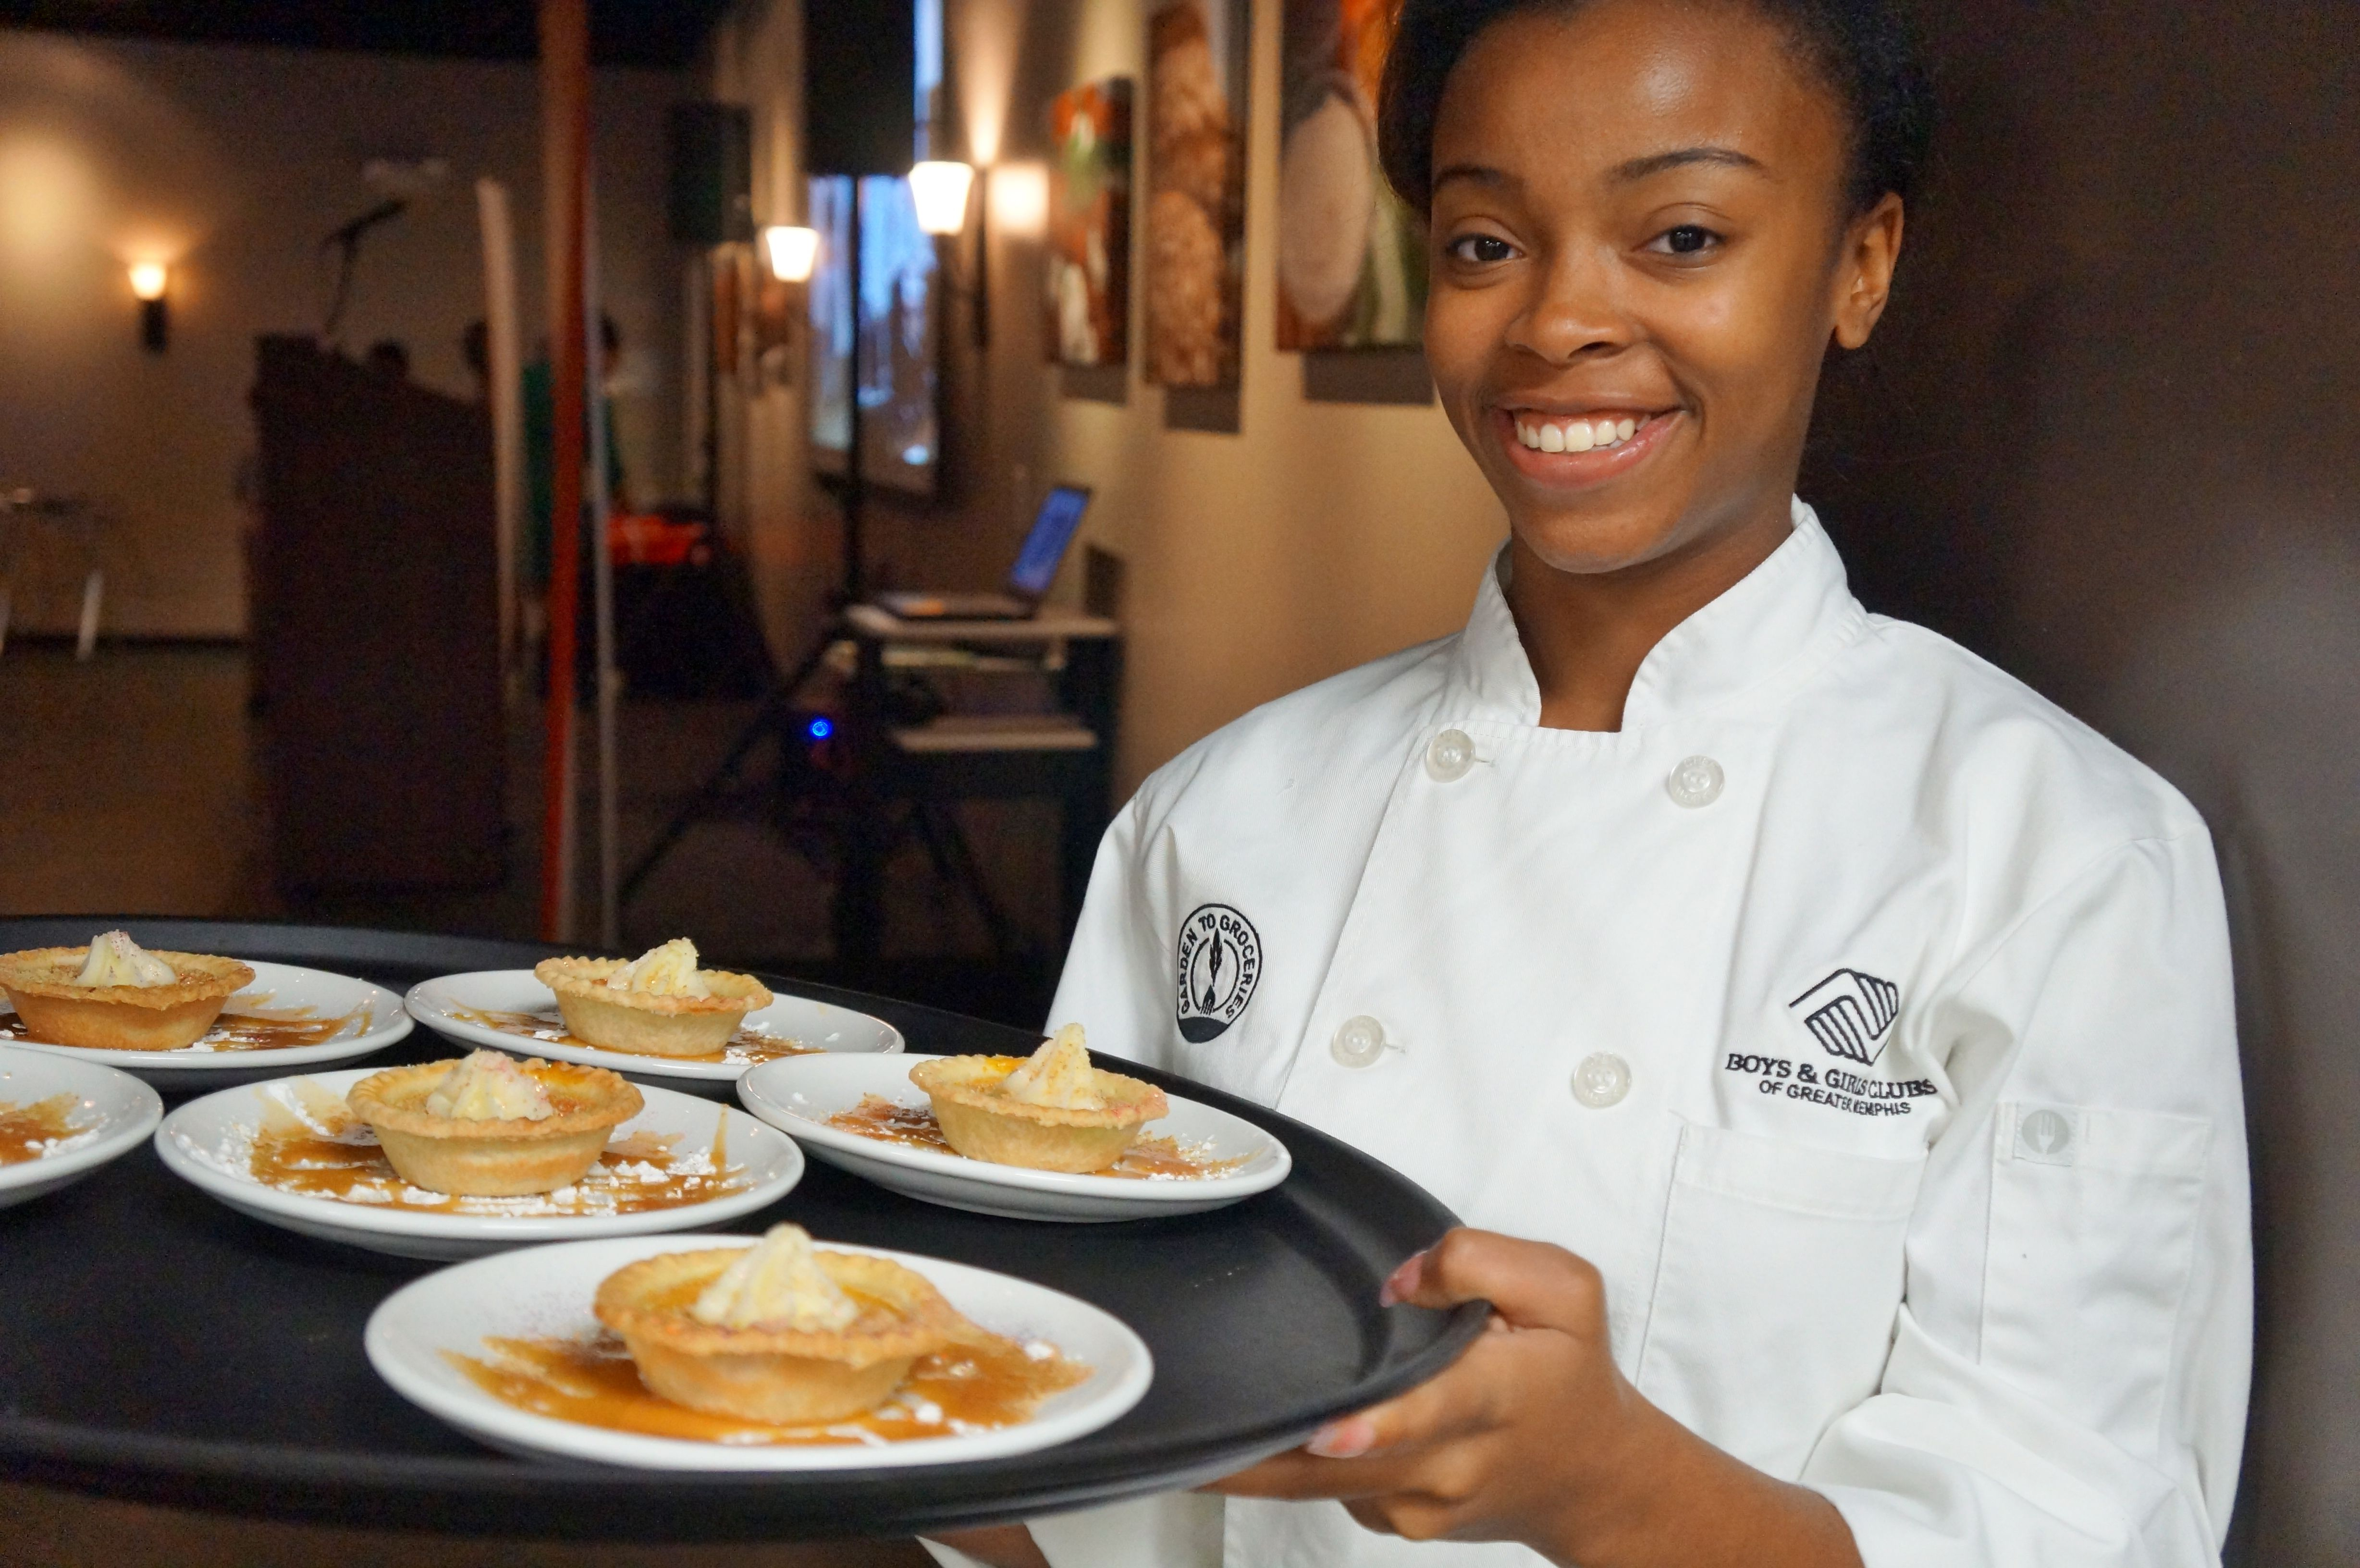 Culinary arts at the juice plus technical training center